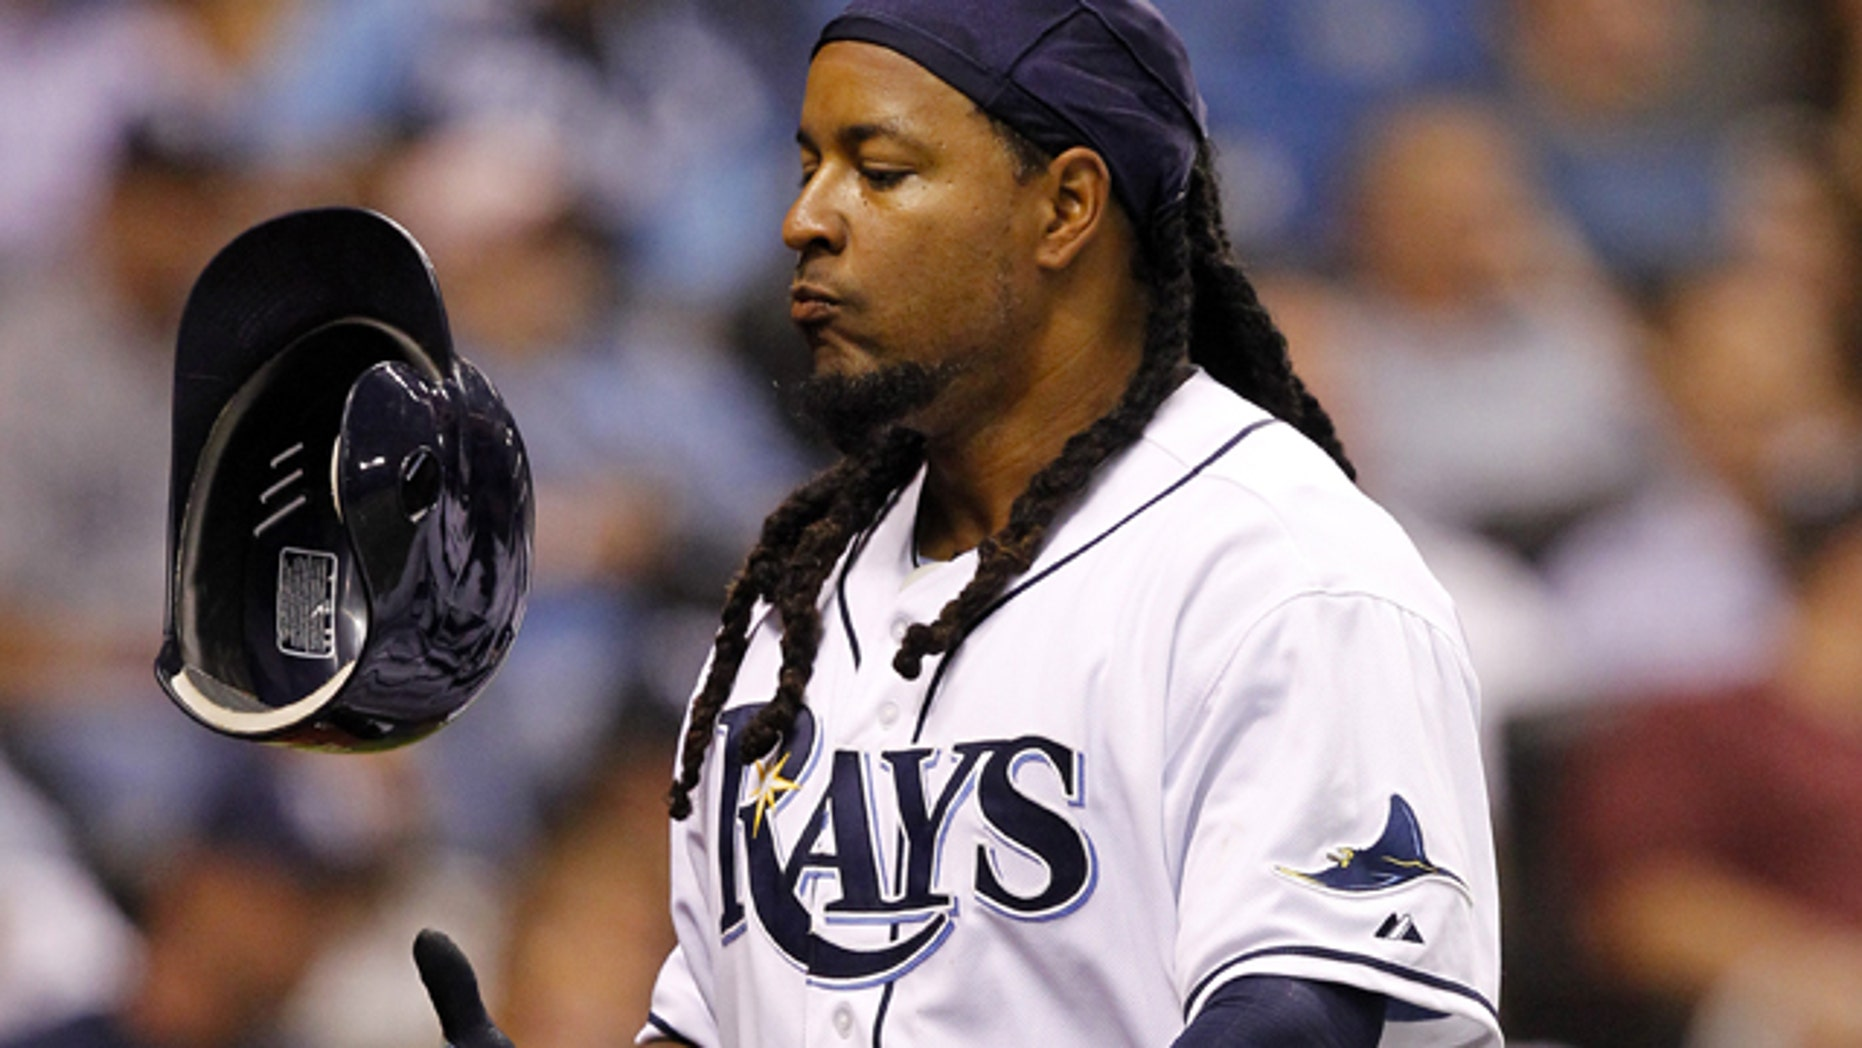 Tampa Bay Rays' Manny Ramirez is retiring rather than submit to an MLB drug treatment program.